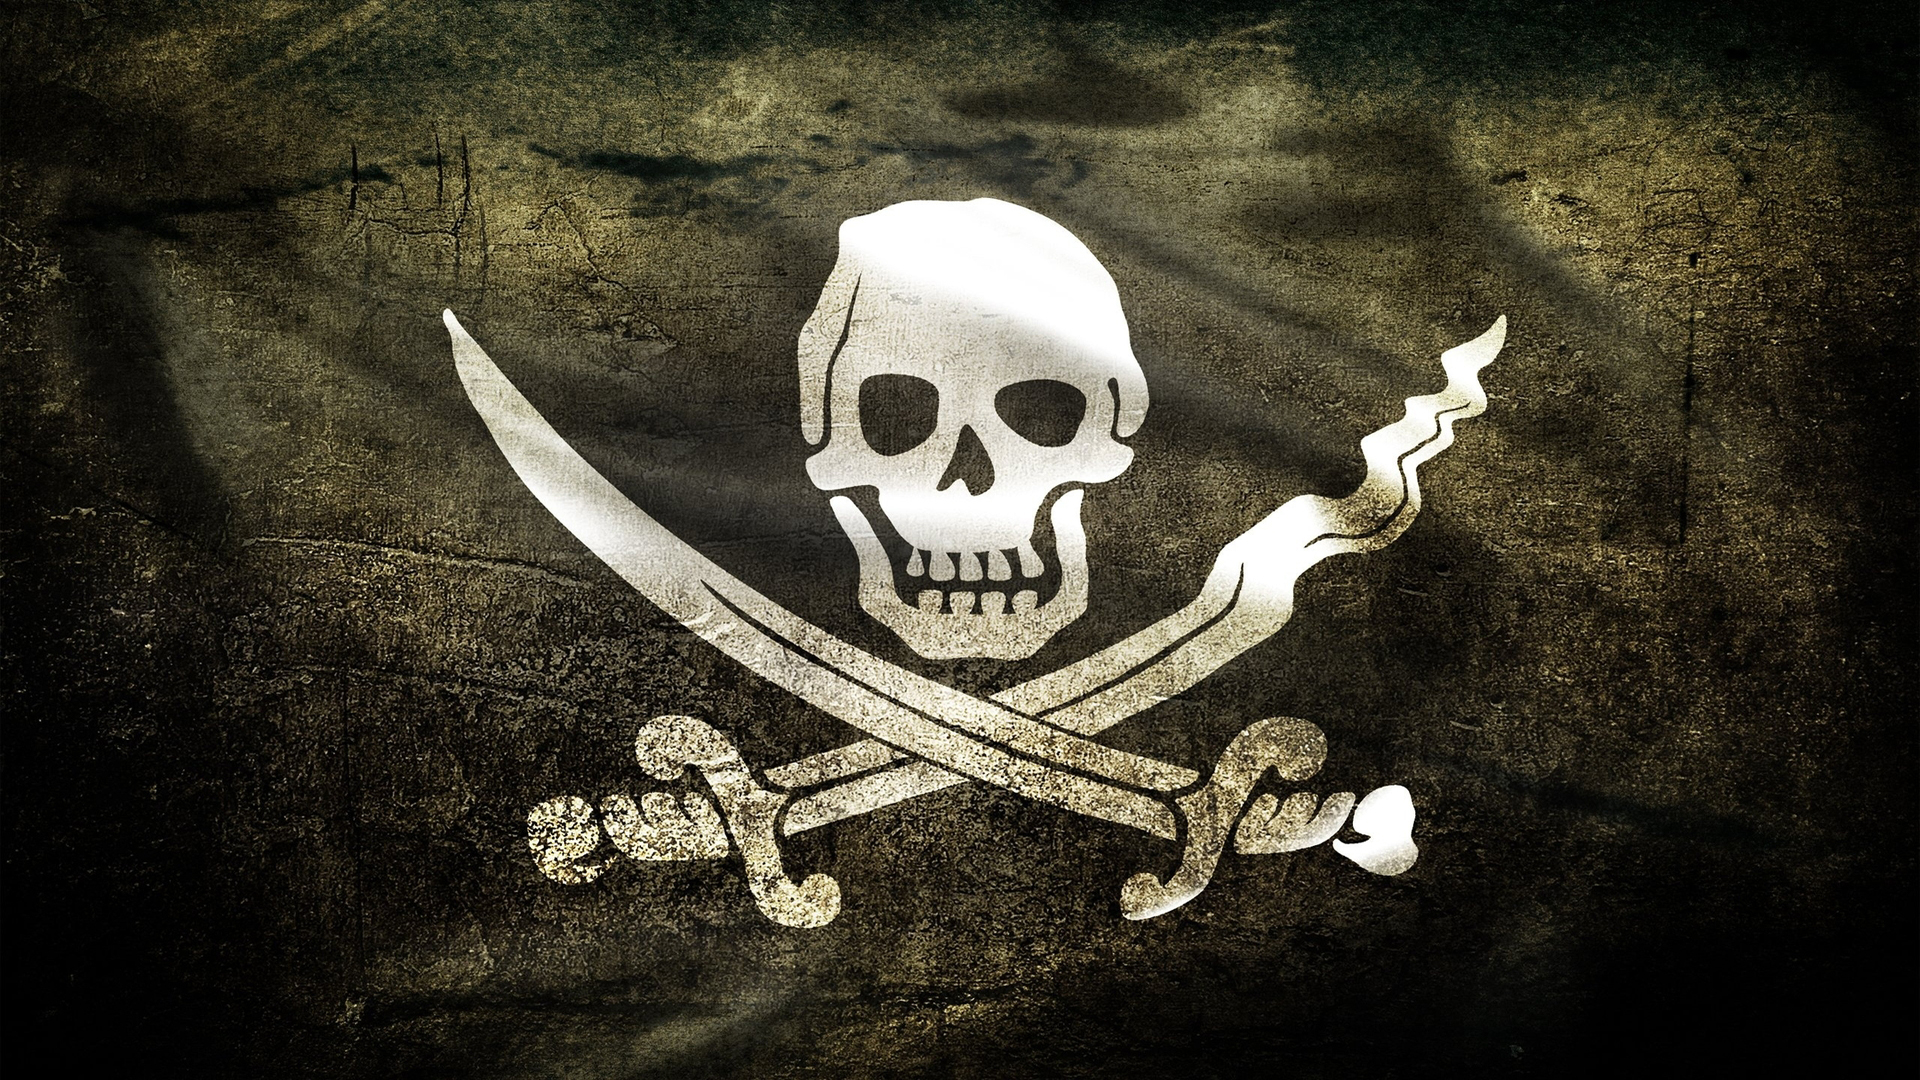 skulland bones, flag, background, texture, photo, skull and bones texture background, pirate flag